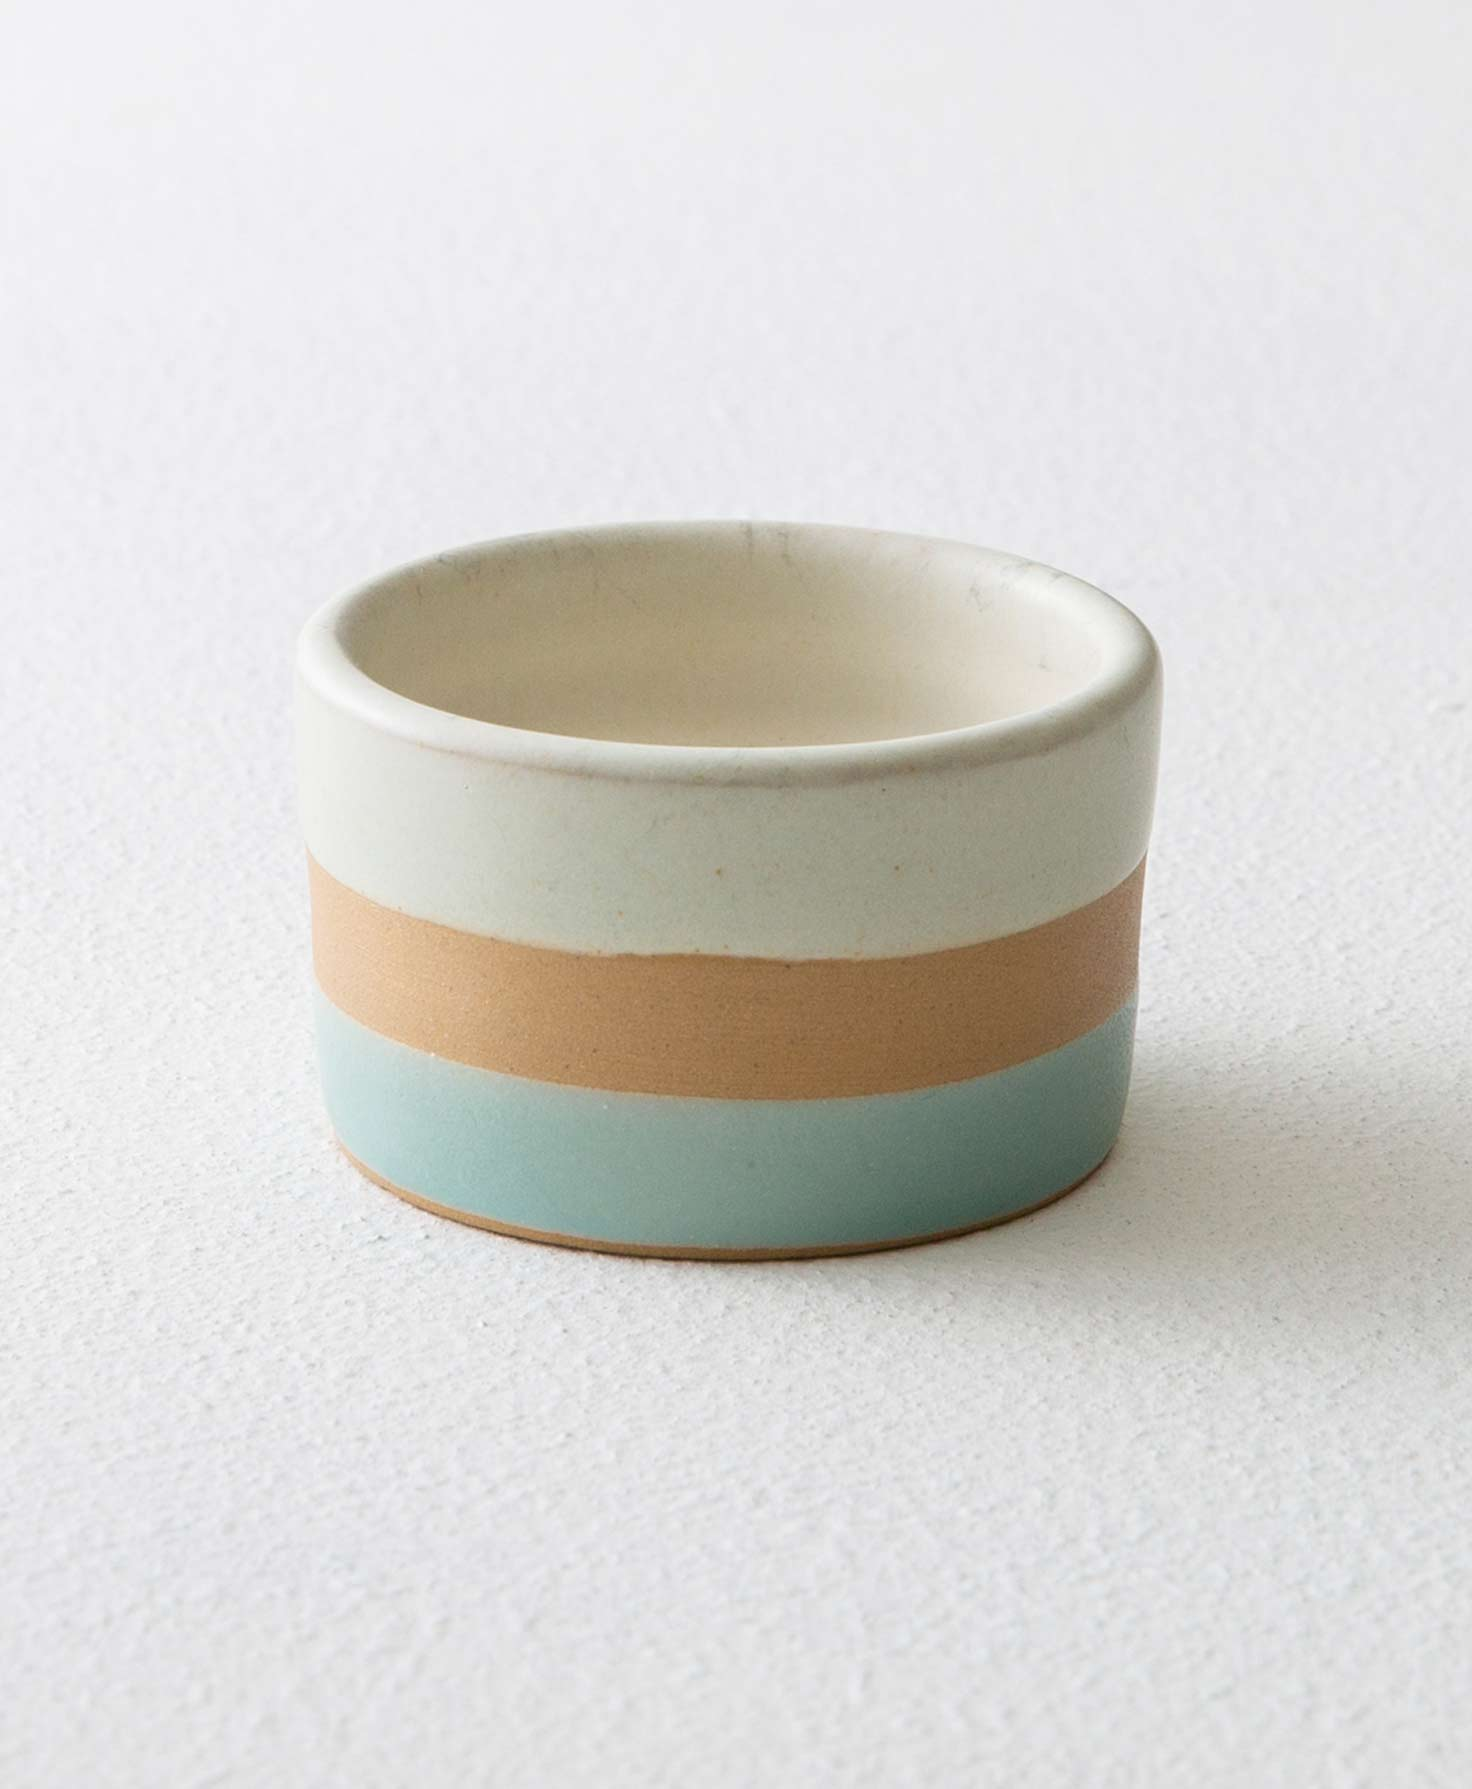 The Banded Stone Tealight Holder in Green sits on a white surface. It is made of smooth stoneware that forms a short, rounded vessel. The stoneware is divided into three different horizontal stripes of color that wrap around the vessel. The bottom stripe is mint green, the middle stripe is tan, and the top stripe is light mint.